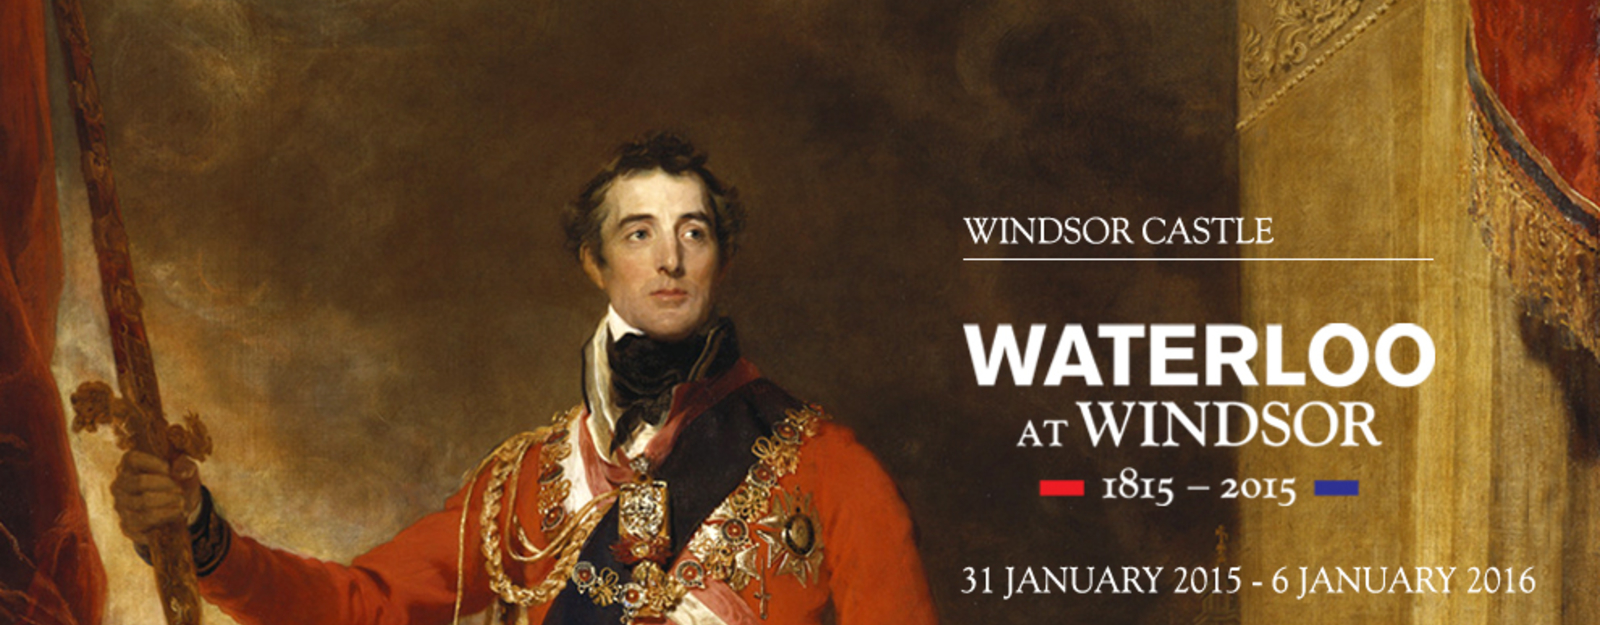 Waterloo at Windsor at Windsor Castle until 6 January 2016